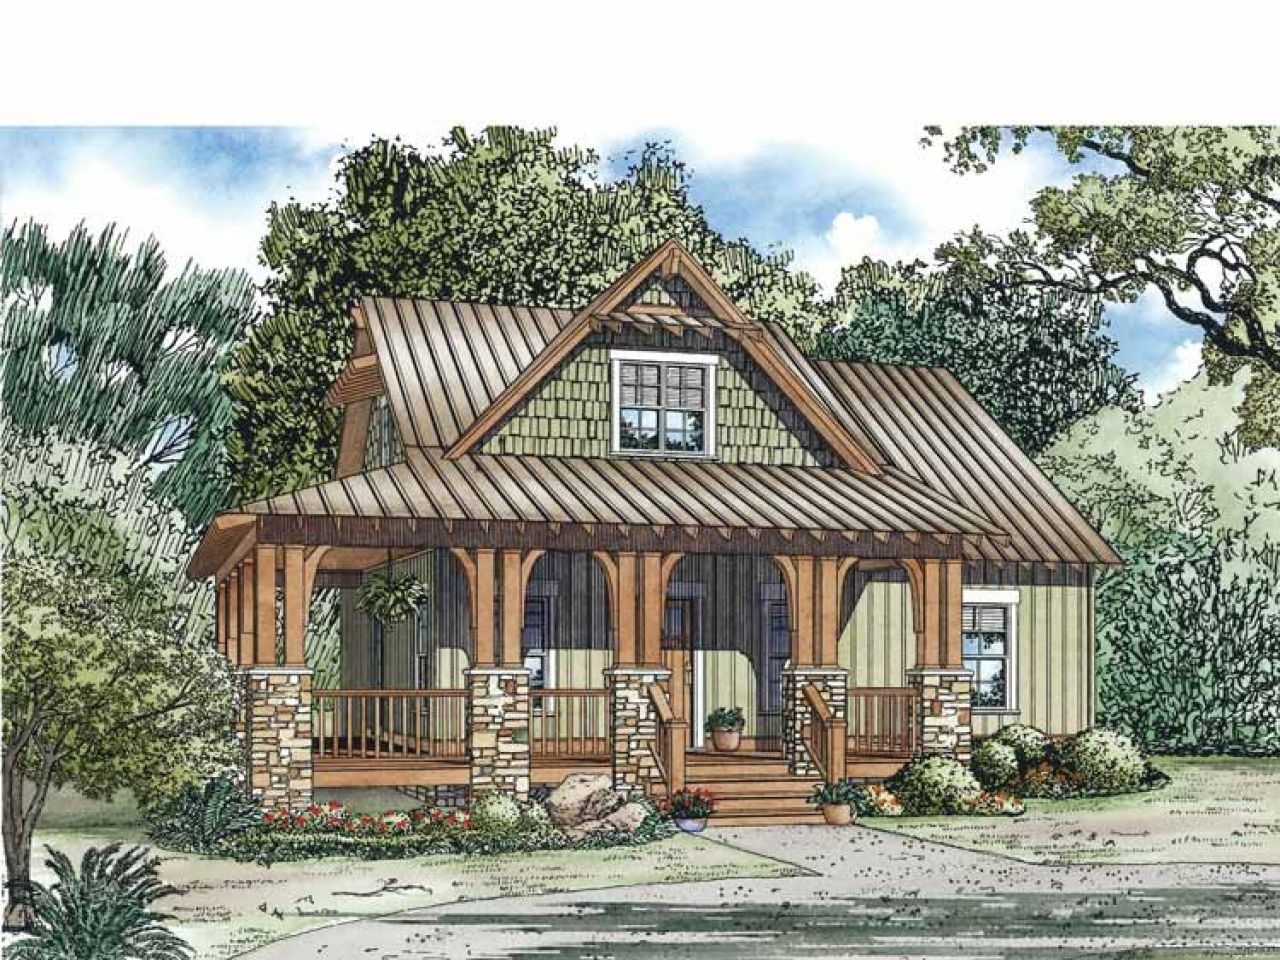 10 Awesome Cottage House Plans For 2019 Rustic House Plans Craftsman Style House Plans Country House Plans